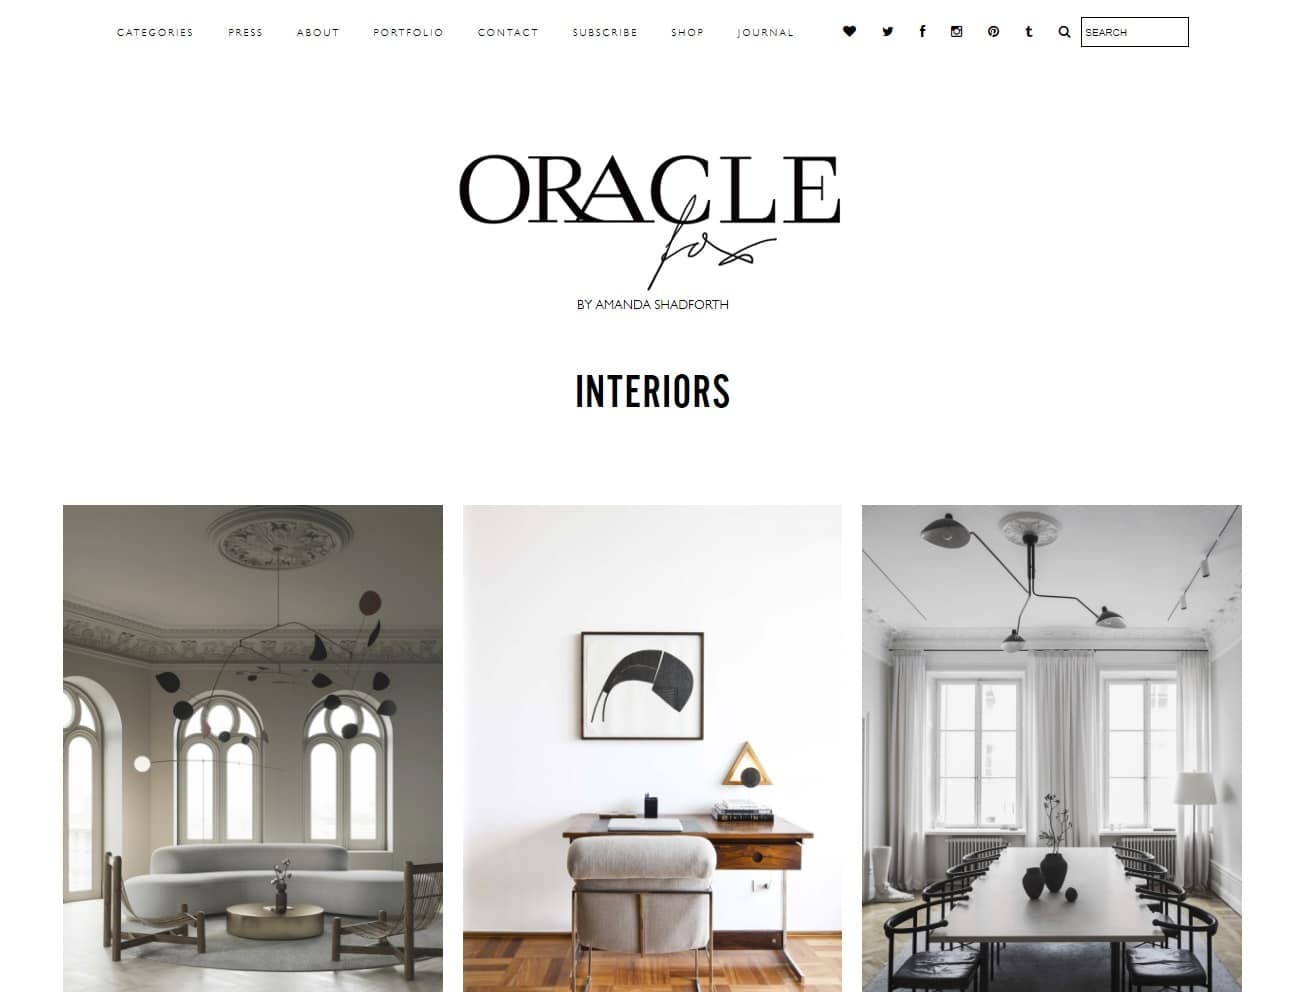 Oracle Fox industry interior design leader